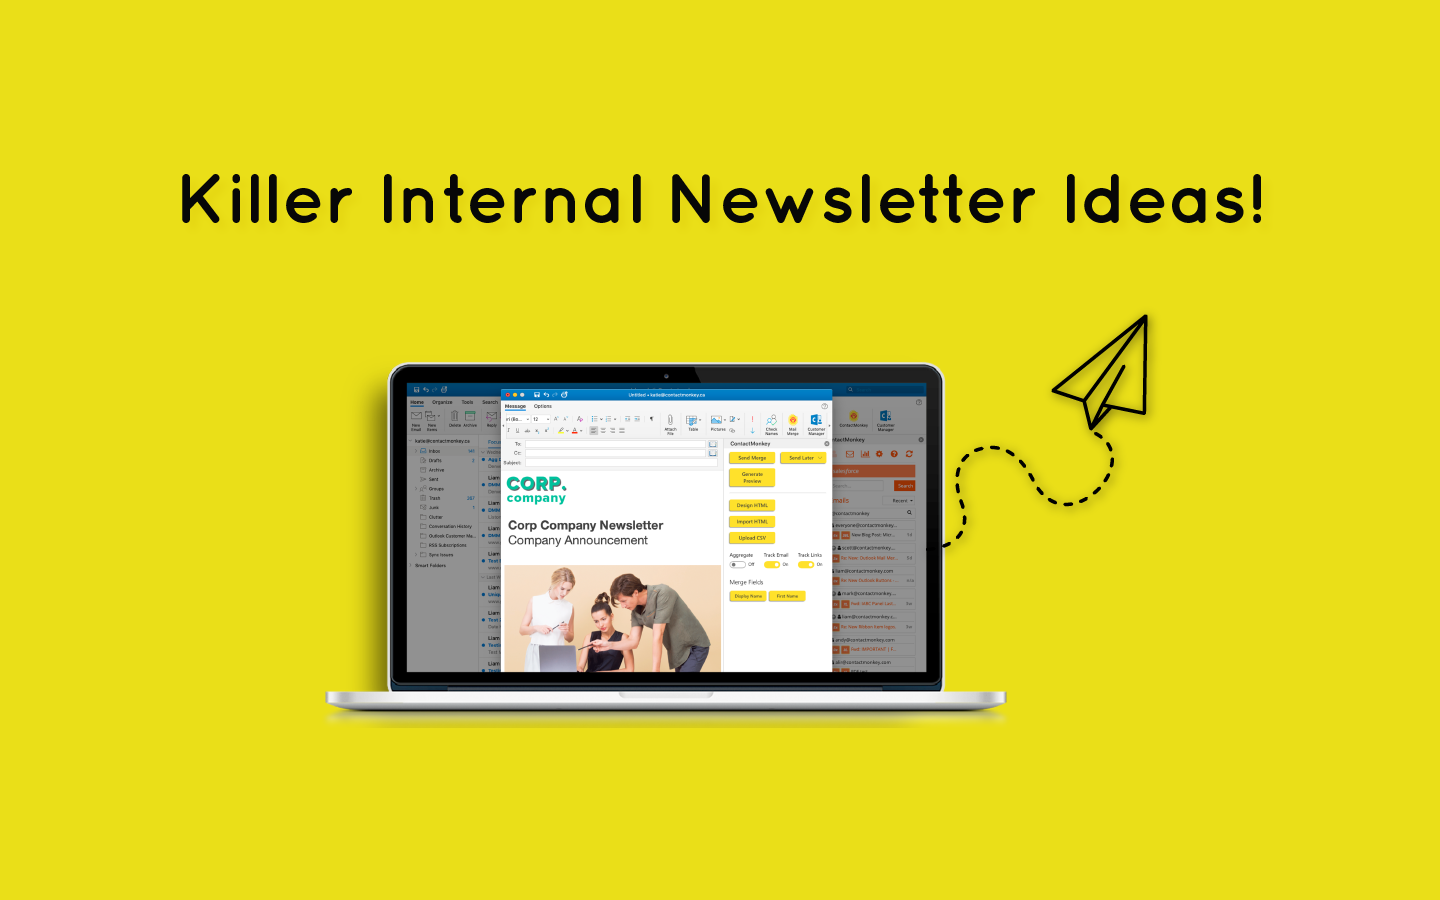 Employee Newsletter Ideas: 10 Killer Examples (That Actually